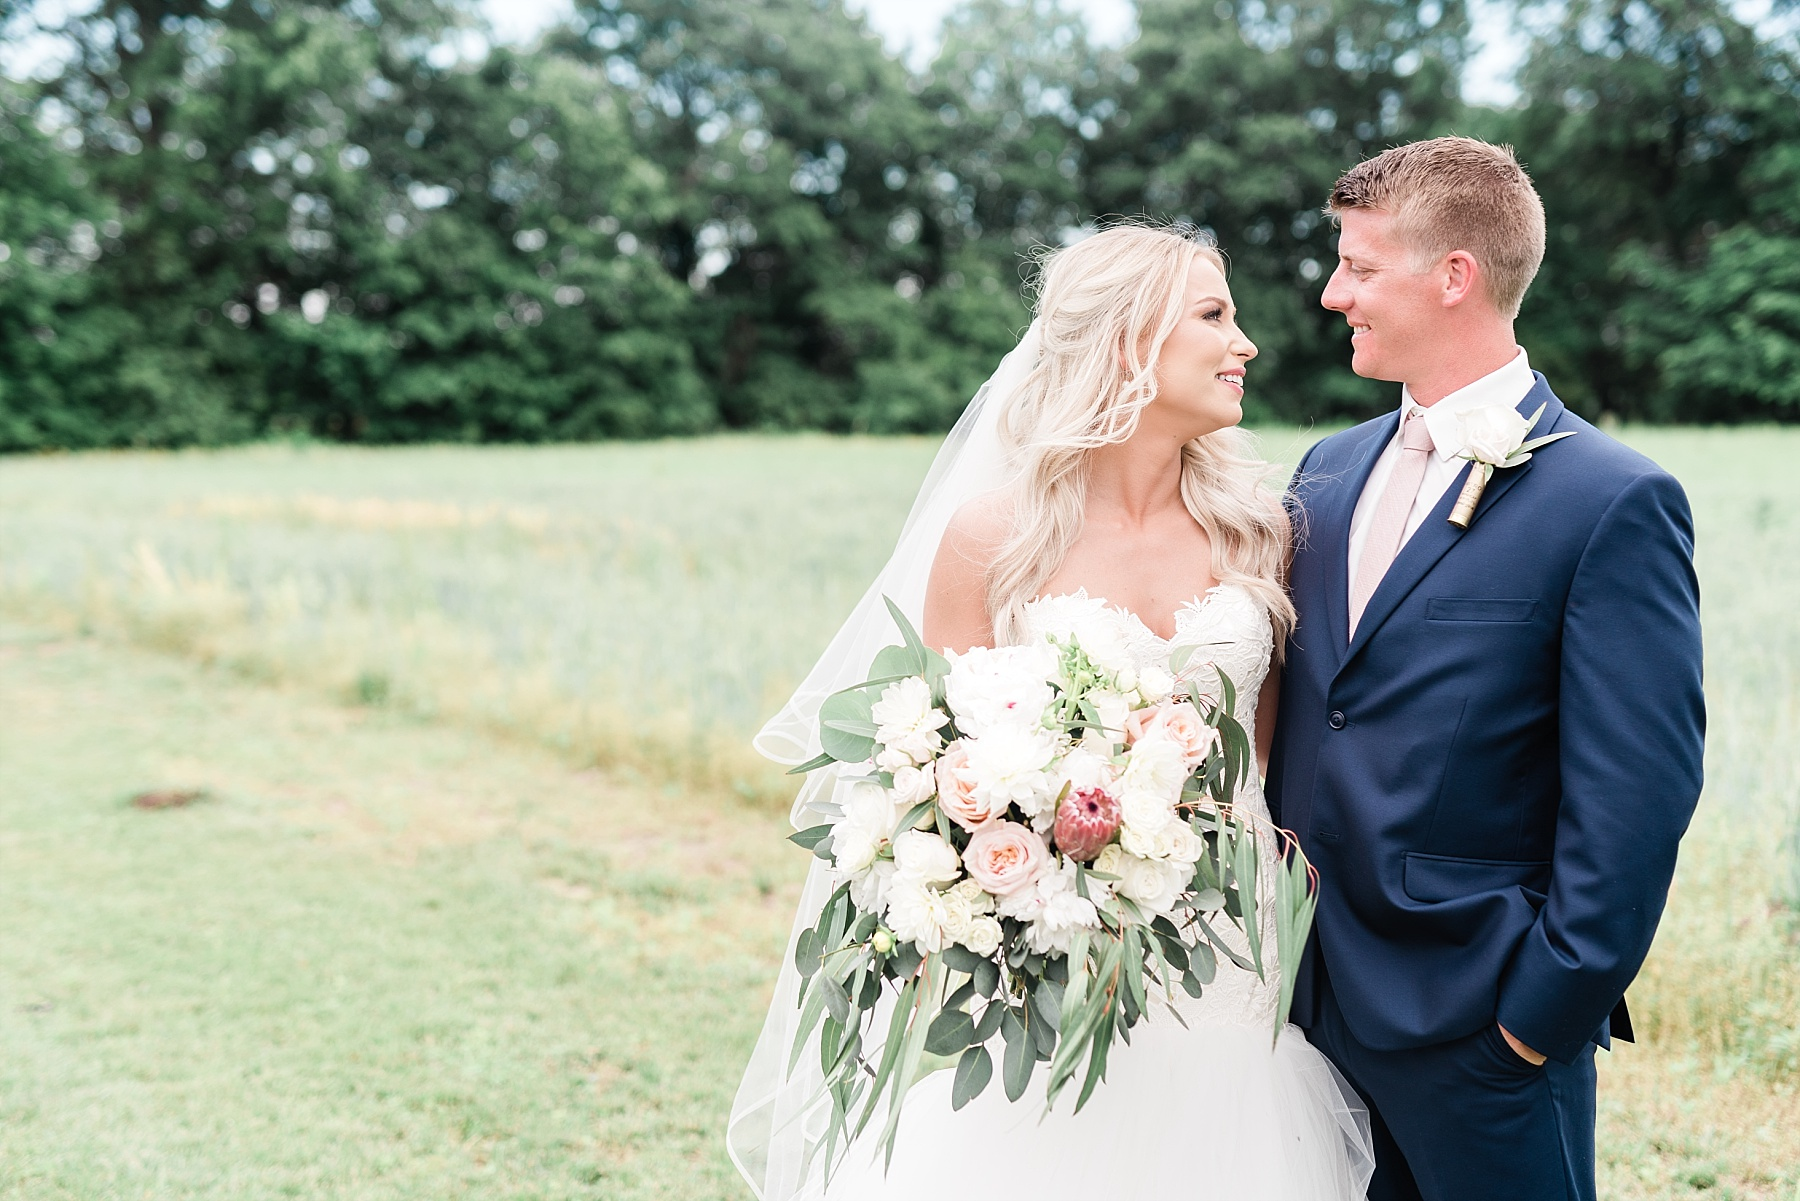 Stunning Heartfelt, Elegant, Fine Art, Chic, Outdoor Spring Wedding with Blush, Cream, Greenery, Rose Gold, and Sequins at Emerson Fields Venue by Kelsi Kliethermes Photography_0055.jpg